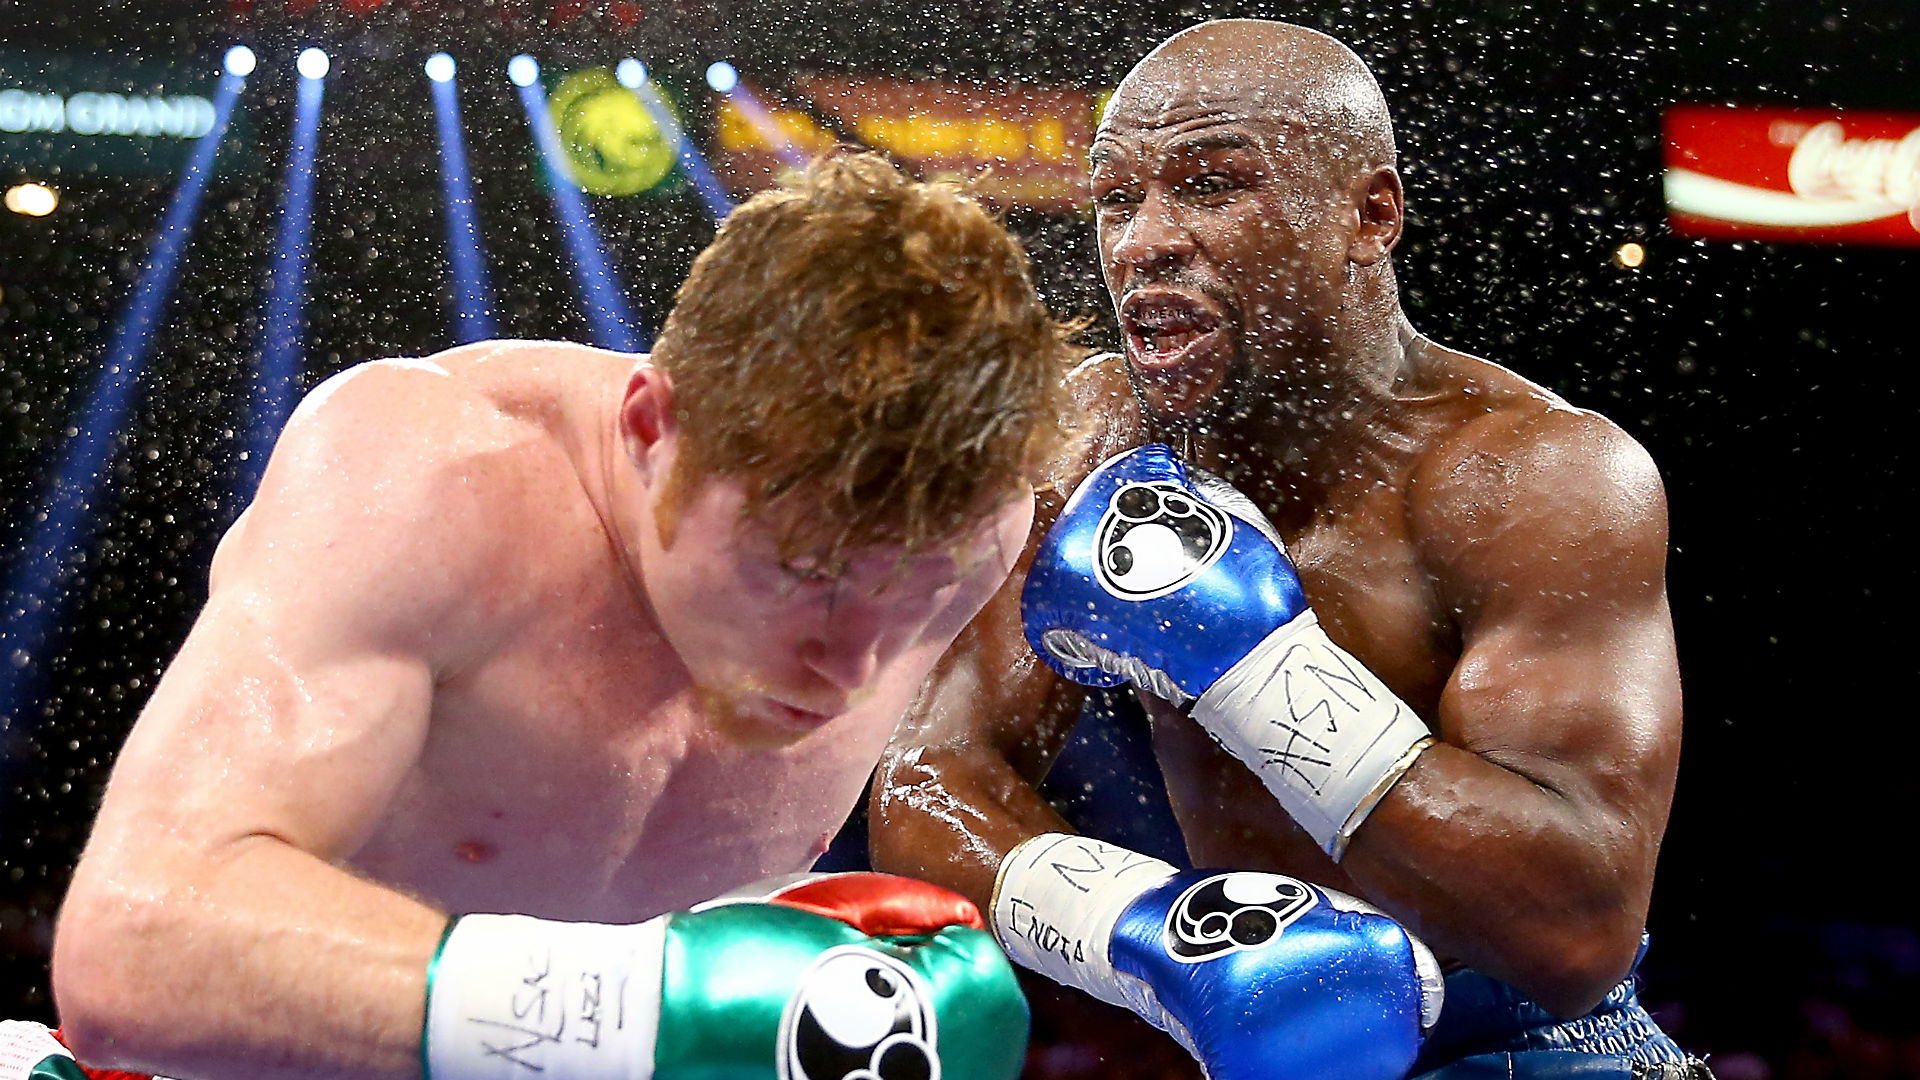 Zsg6zpep11861ilpo9bbwv3um furthermore Need Know Buying Halloween Colored Contacts as well Kermit Cintron likewise Eva Longoria George Lopez Celebrity Family Feud besides Mayweather Vs Mcgregor Is Scheduled For Aug 26. on oscar de la hoya controversy